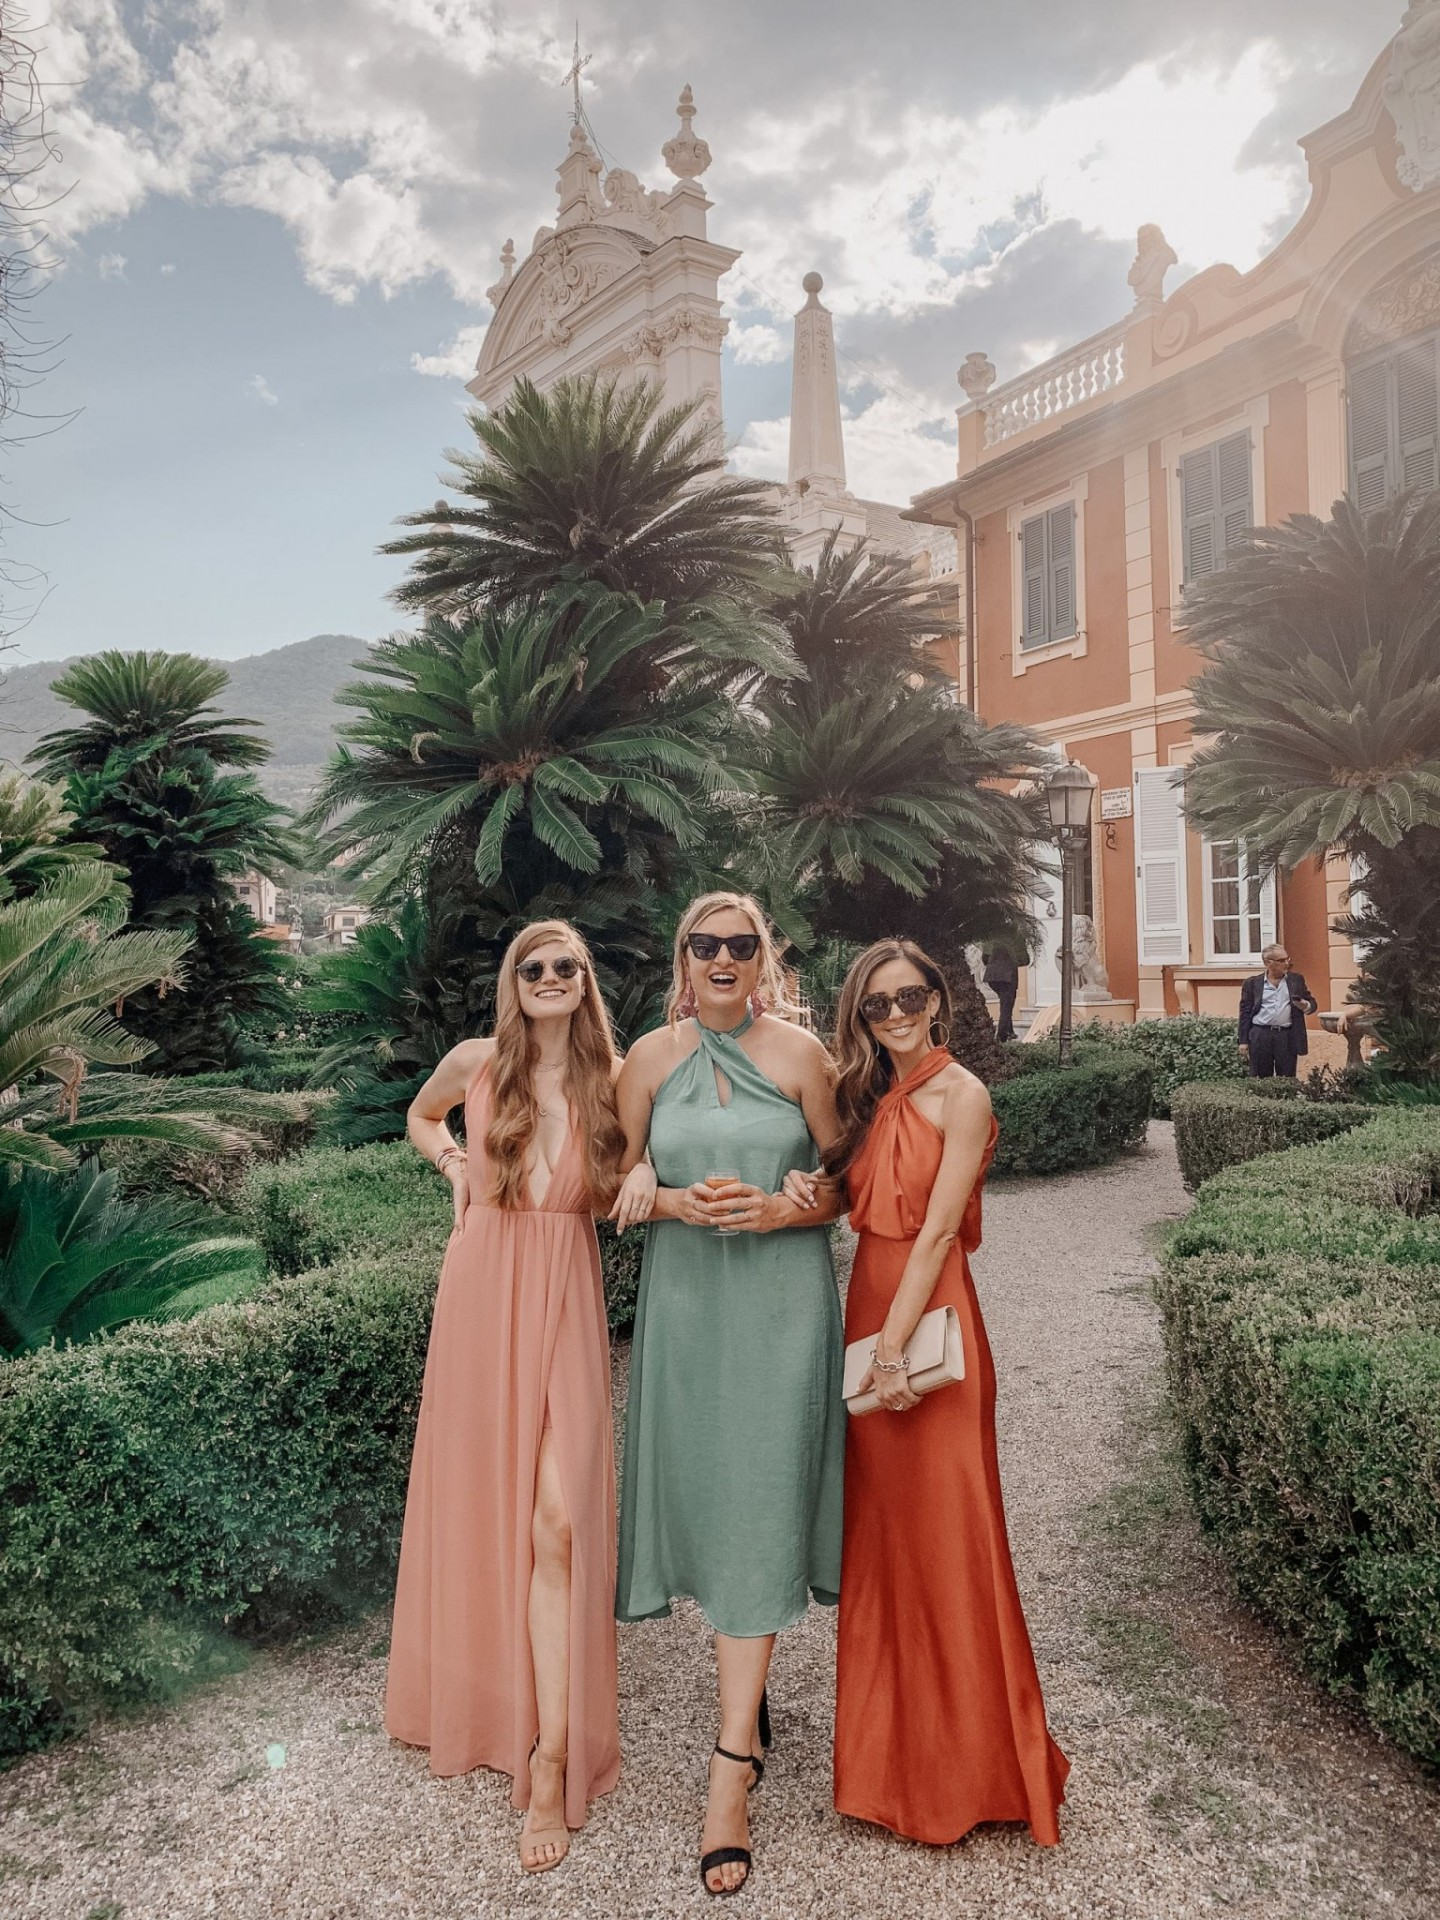 Lifestyle blogger Mollie Moore shares a Portofino Travel Guide | Travel Guide: Best Things to do in Portofino Italy by popular international travel blogger, Mollie Moore: image of three women standing together outside in Portofino Italy.